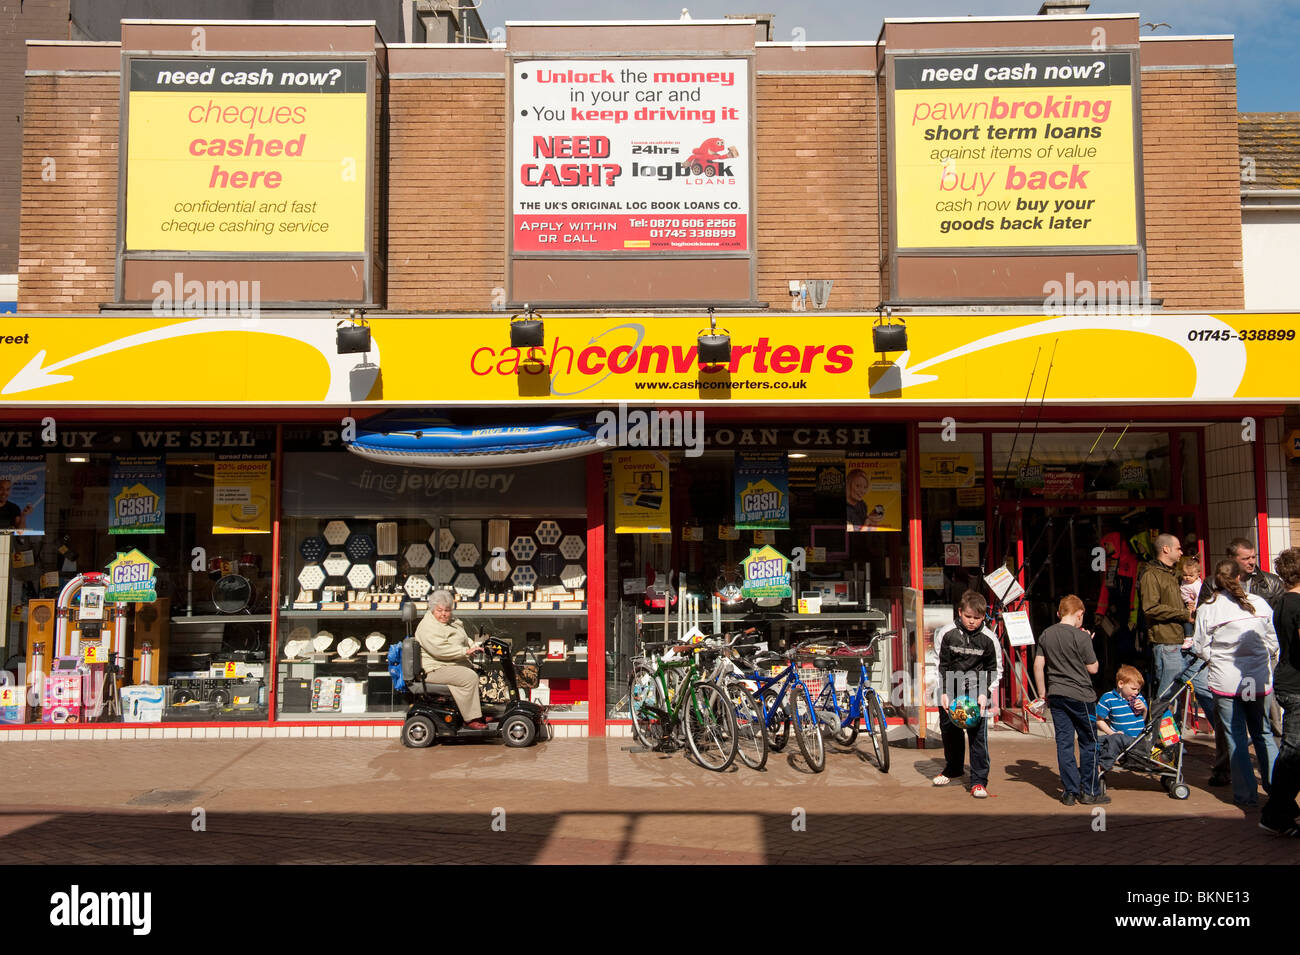 Cash Converters pawn shop in Rhyl town centre, North Wales UK - Stock Image